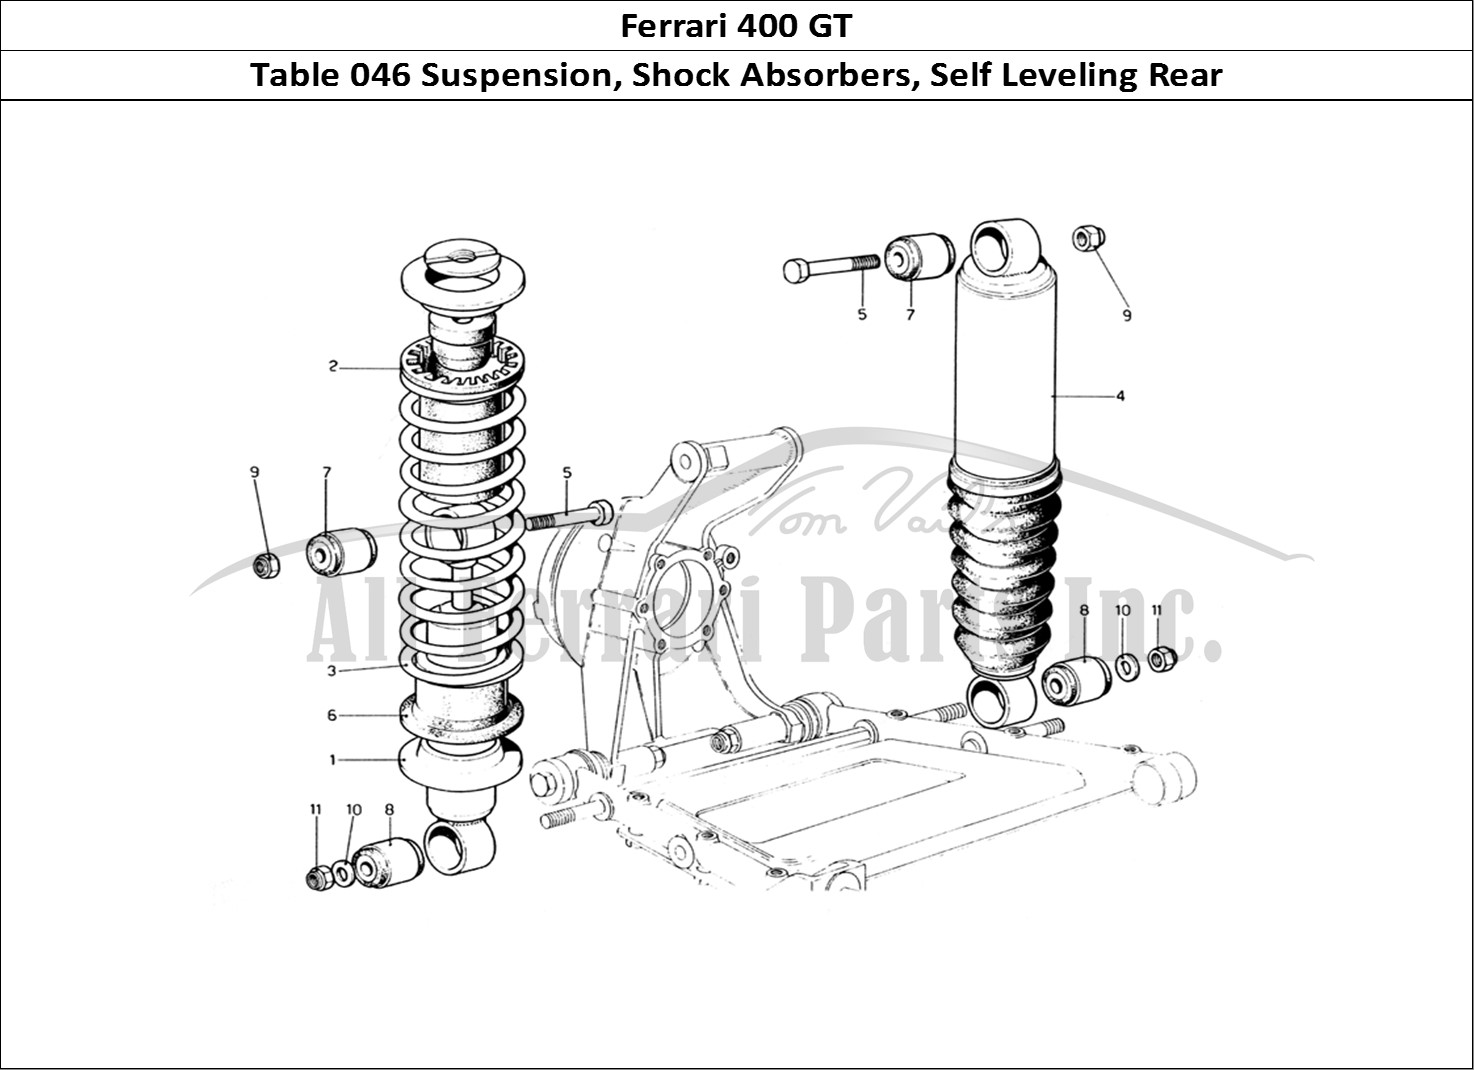 Buy original Ferrari 400 GT 046 Suspension, Shock